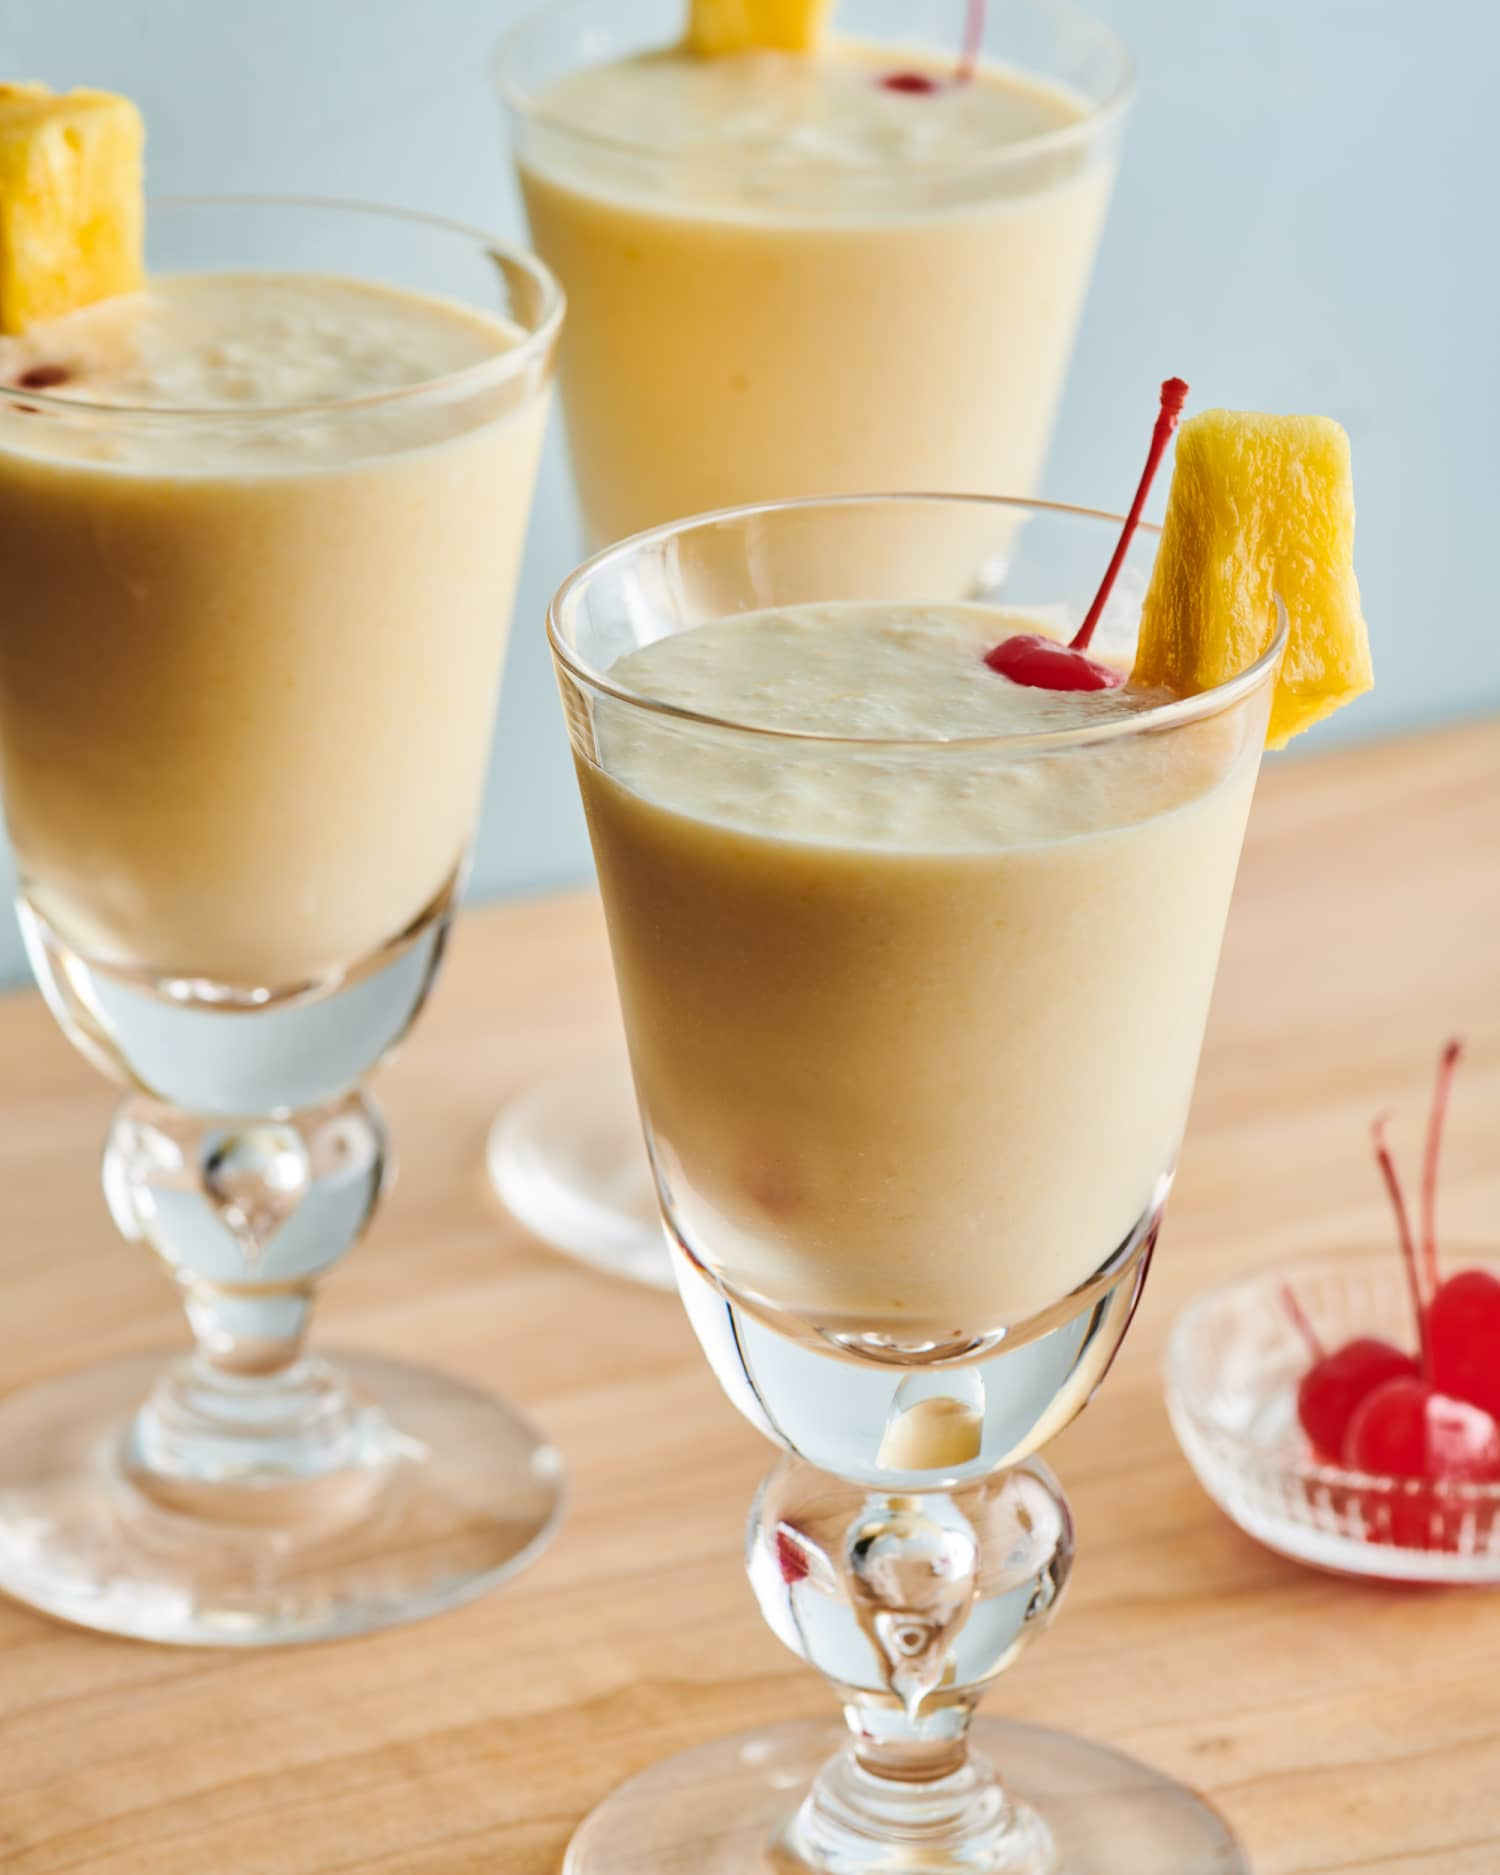 Take a Beach Vacation at Home with a 3-Ingredient Piña Colada